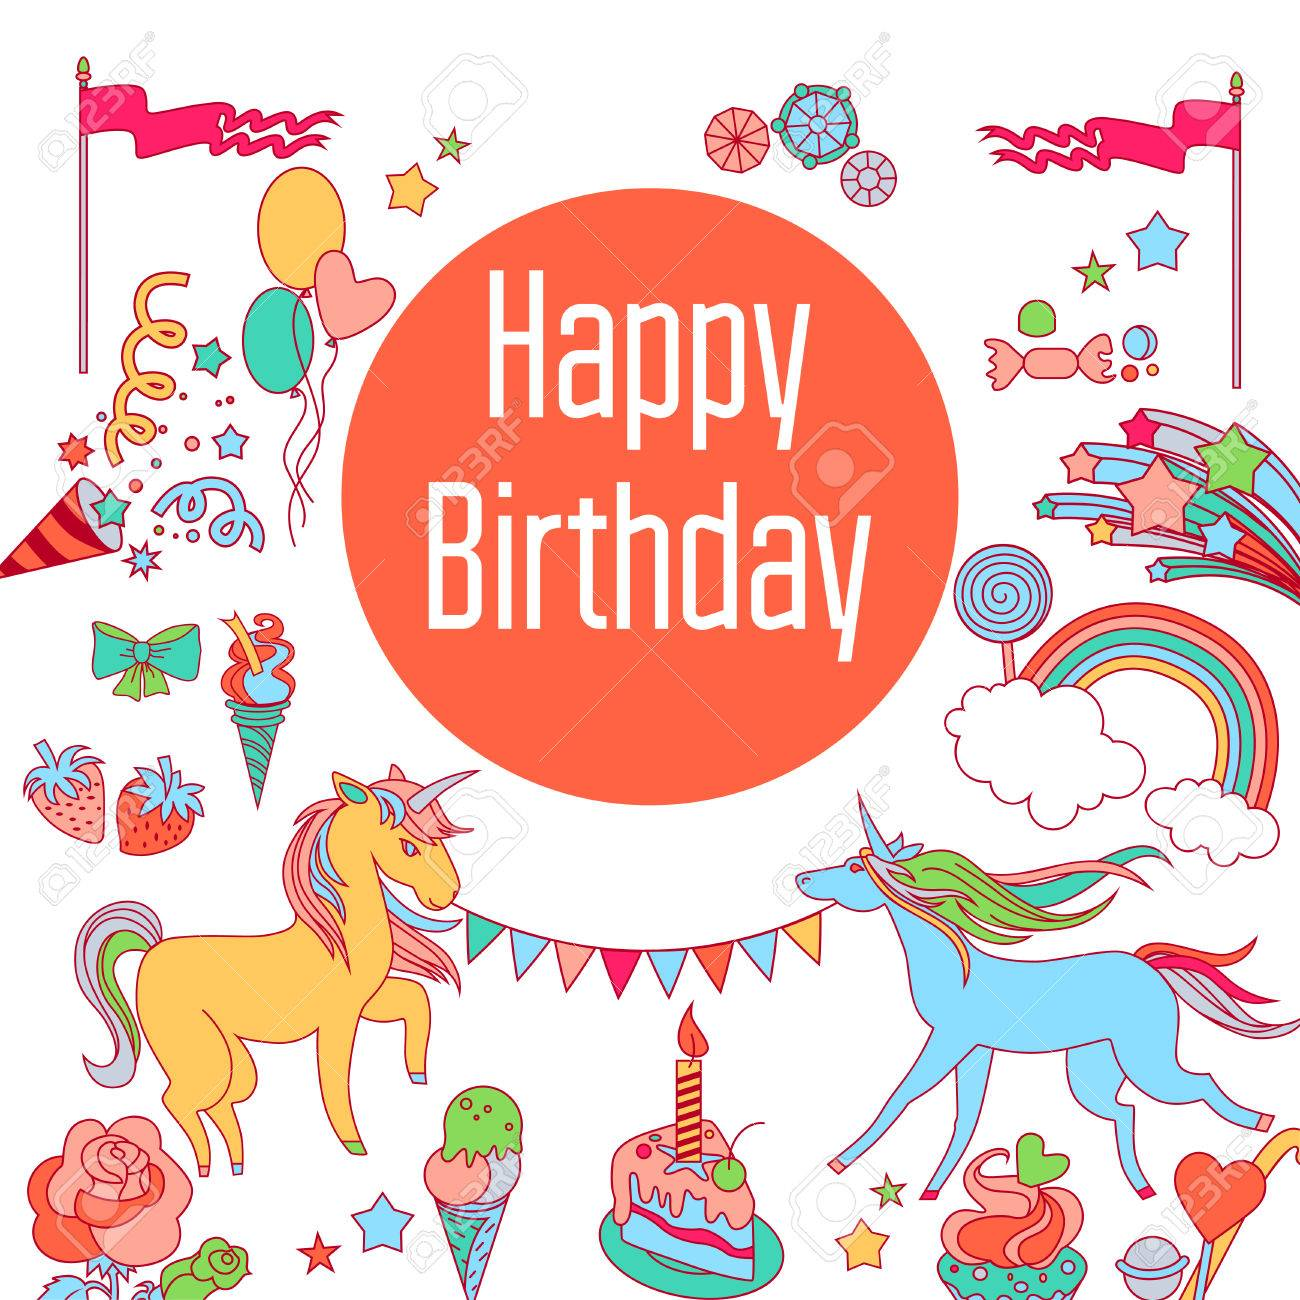 birthday sticker design ; 80489819-hand-drawn-elements-rainbow-unicorn-cloud-stars-flag-for-patches-stickers-design-cards-and-leaflets-